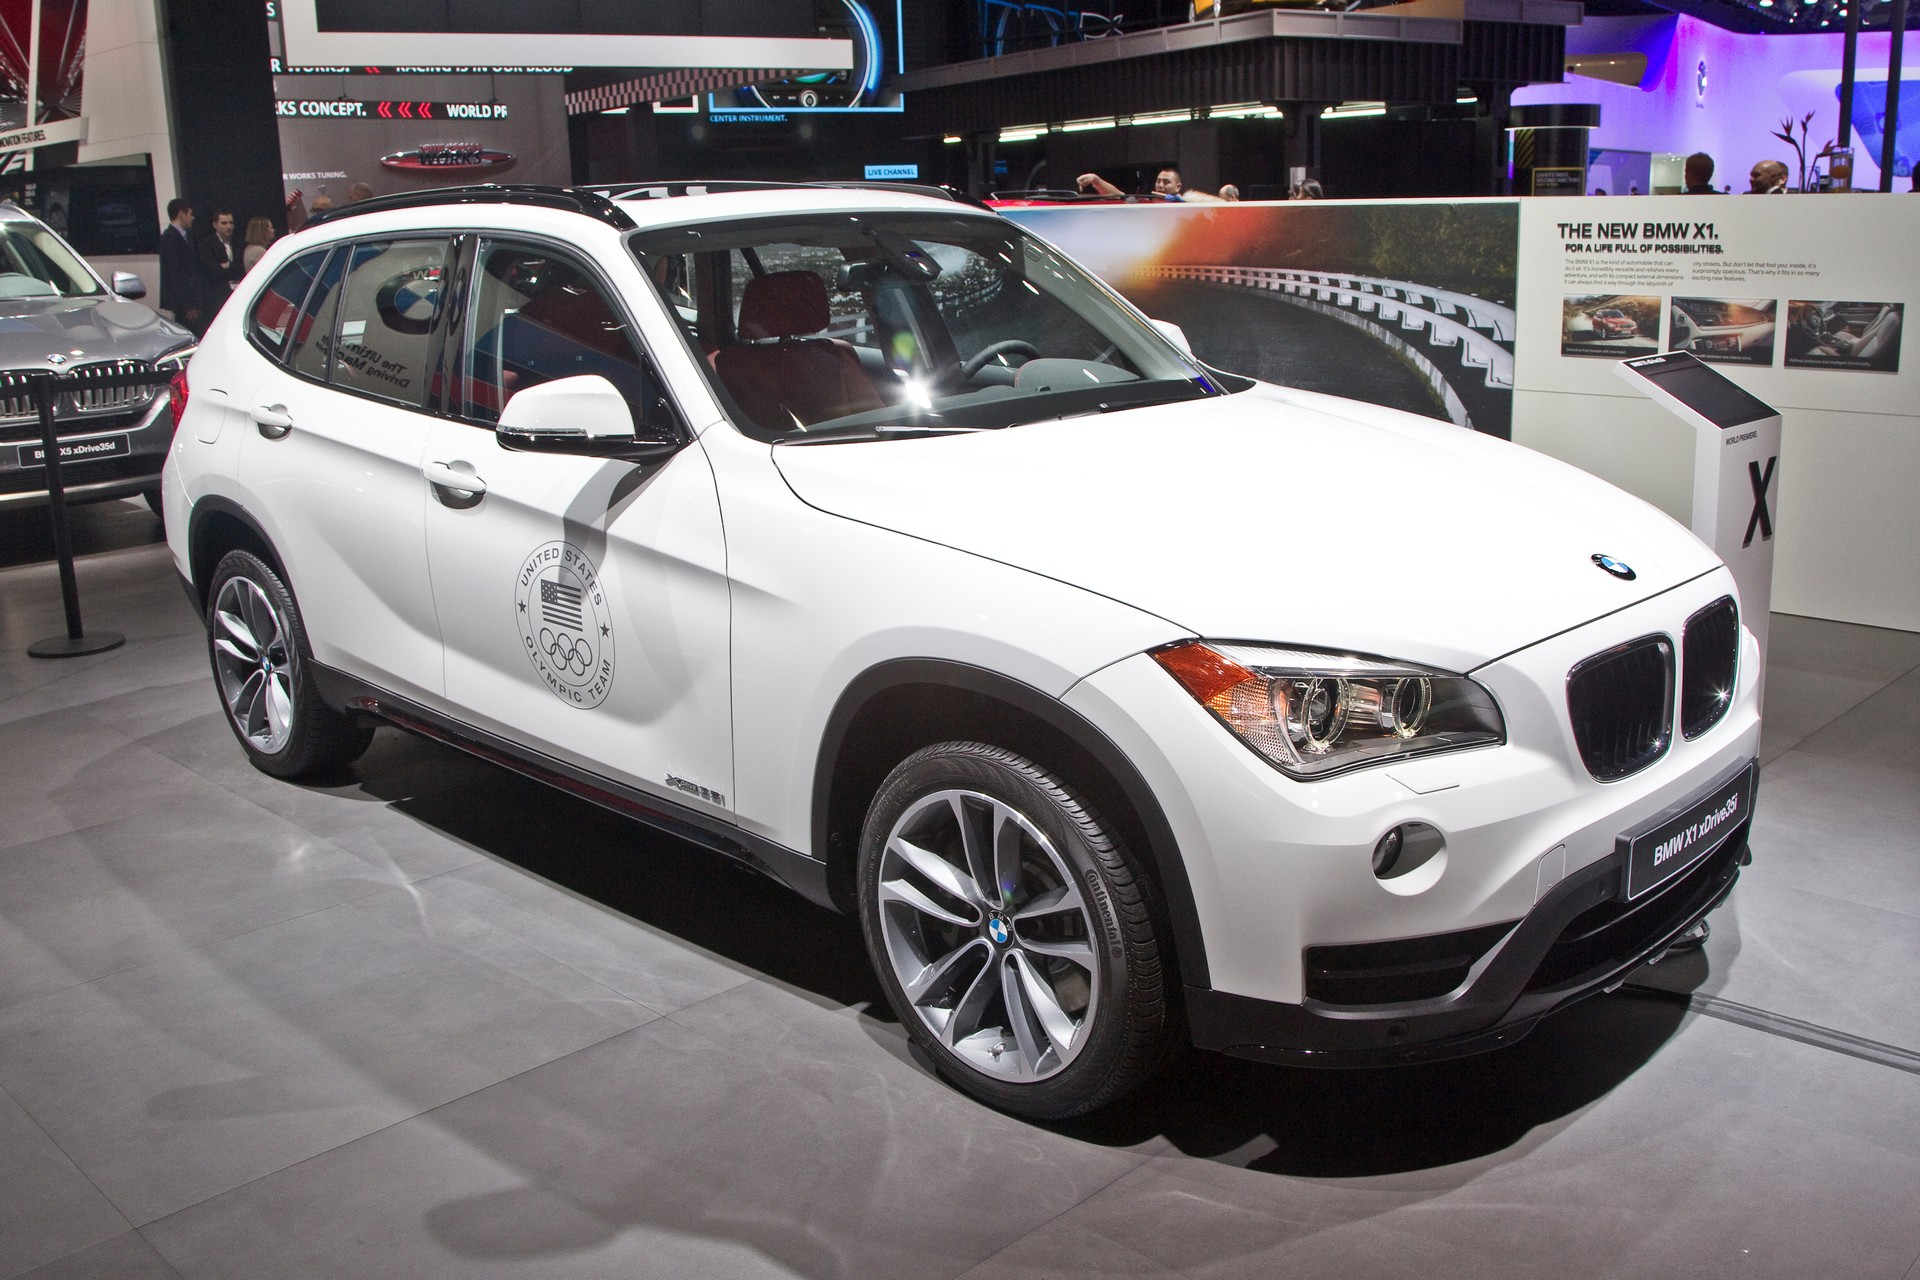 2015 bmw x1 image 12. Black Bedroom Furniture Sets. Home Design Ideas